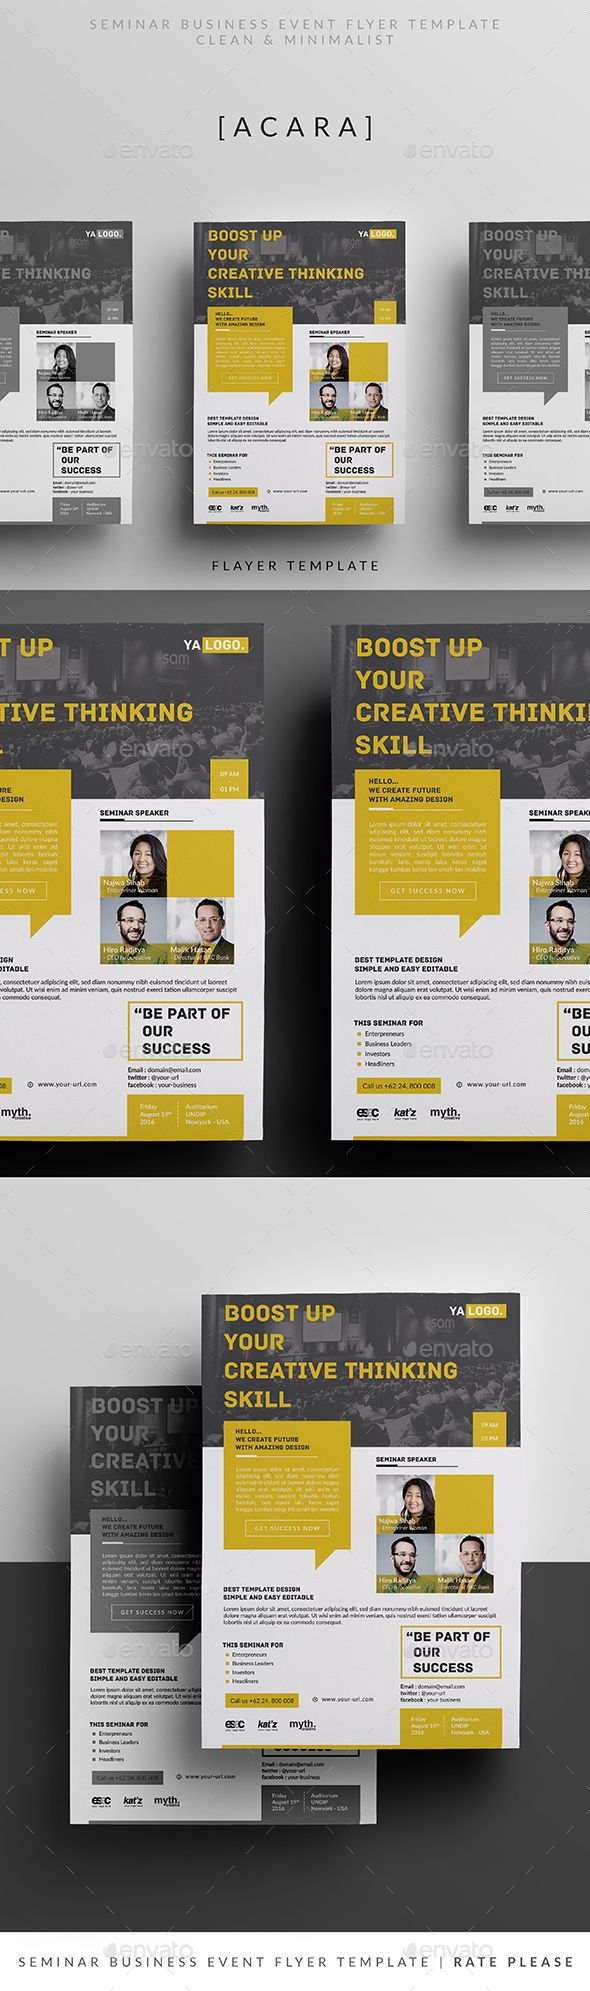 Seminar Business Event Flyer Template PSD Download